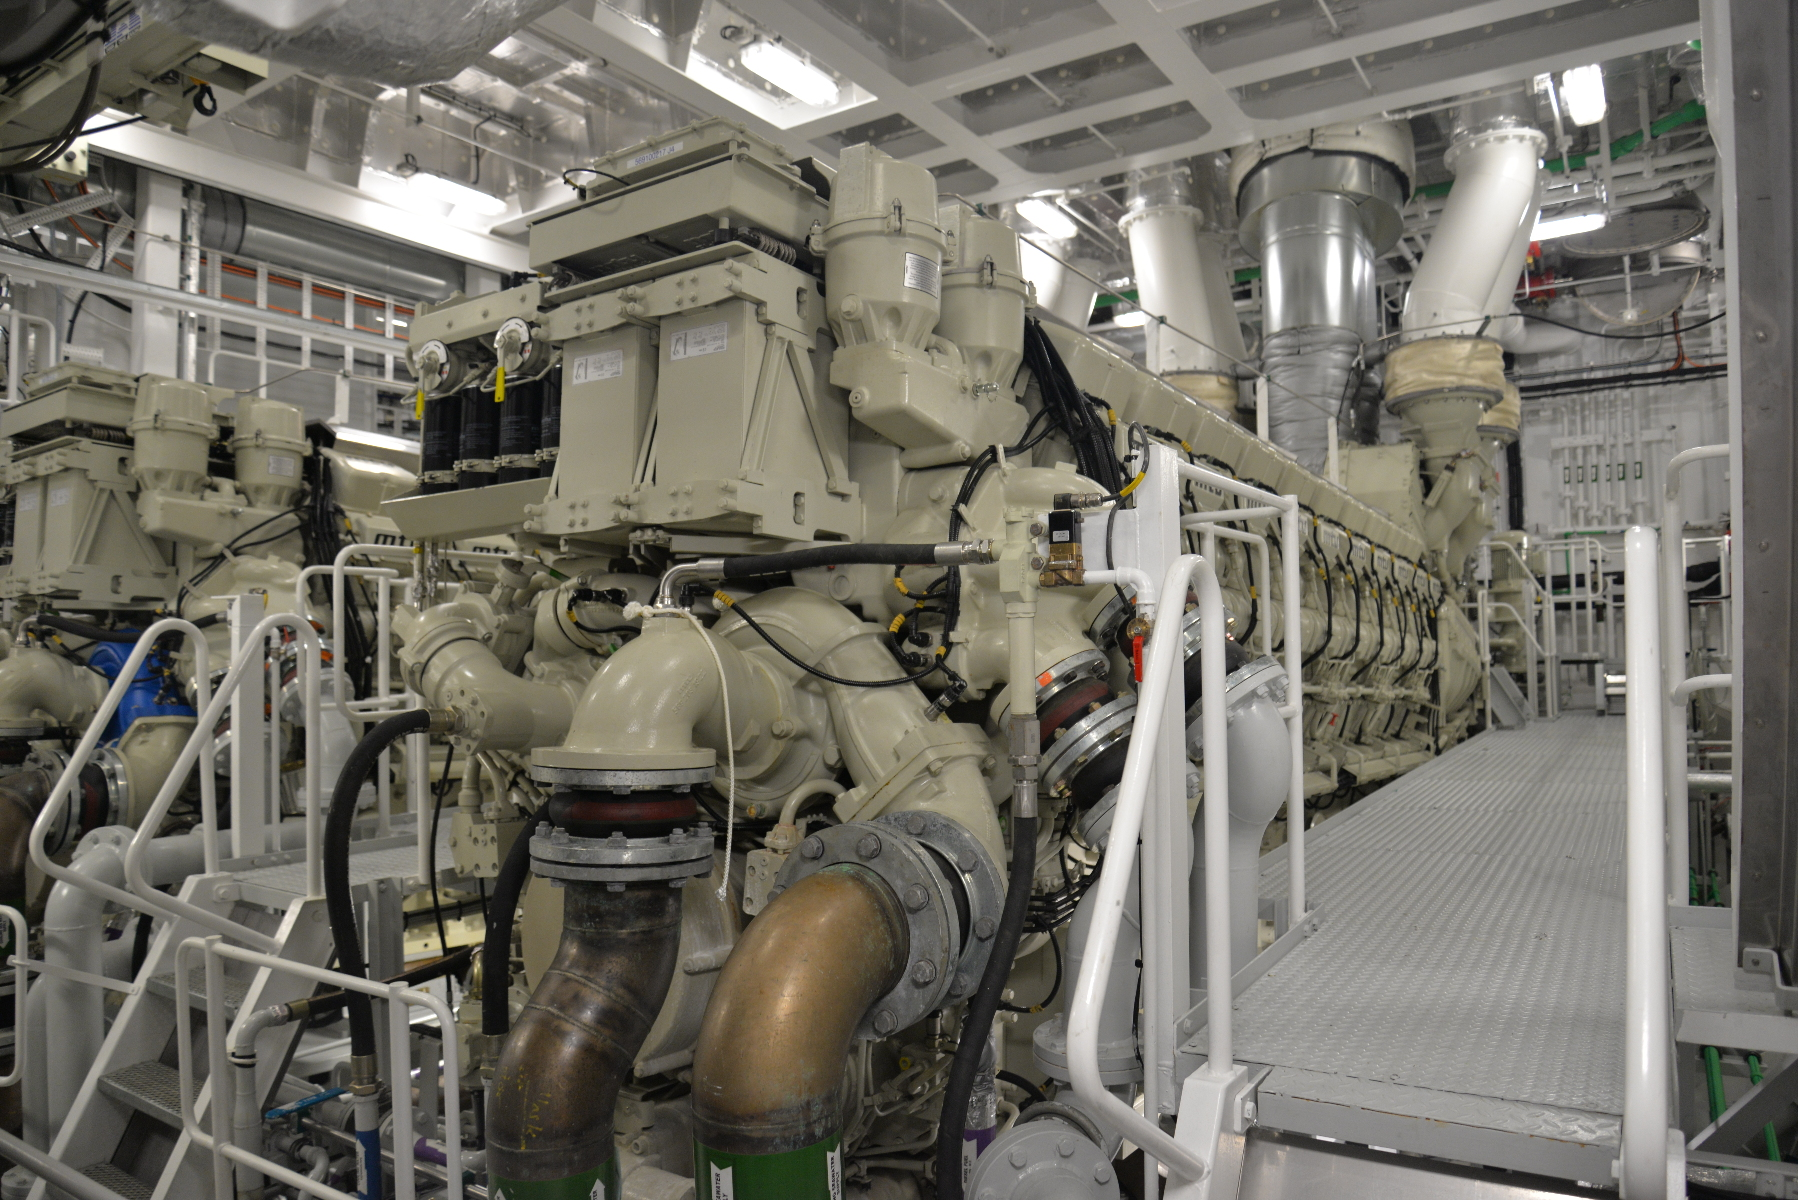 One of the ship's four MTU 20V M70 diesels. Together, they provide 32.8 megawatts to drive the ship's two propeller shafts.